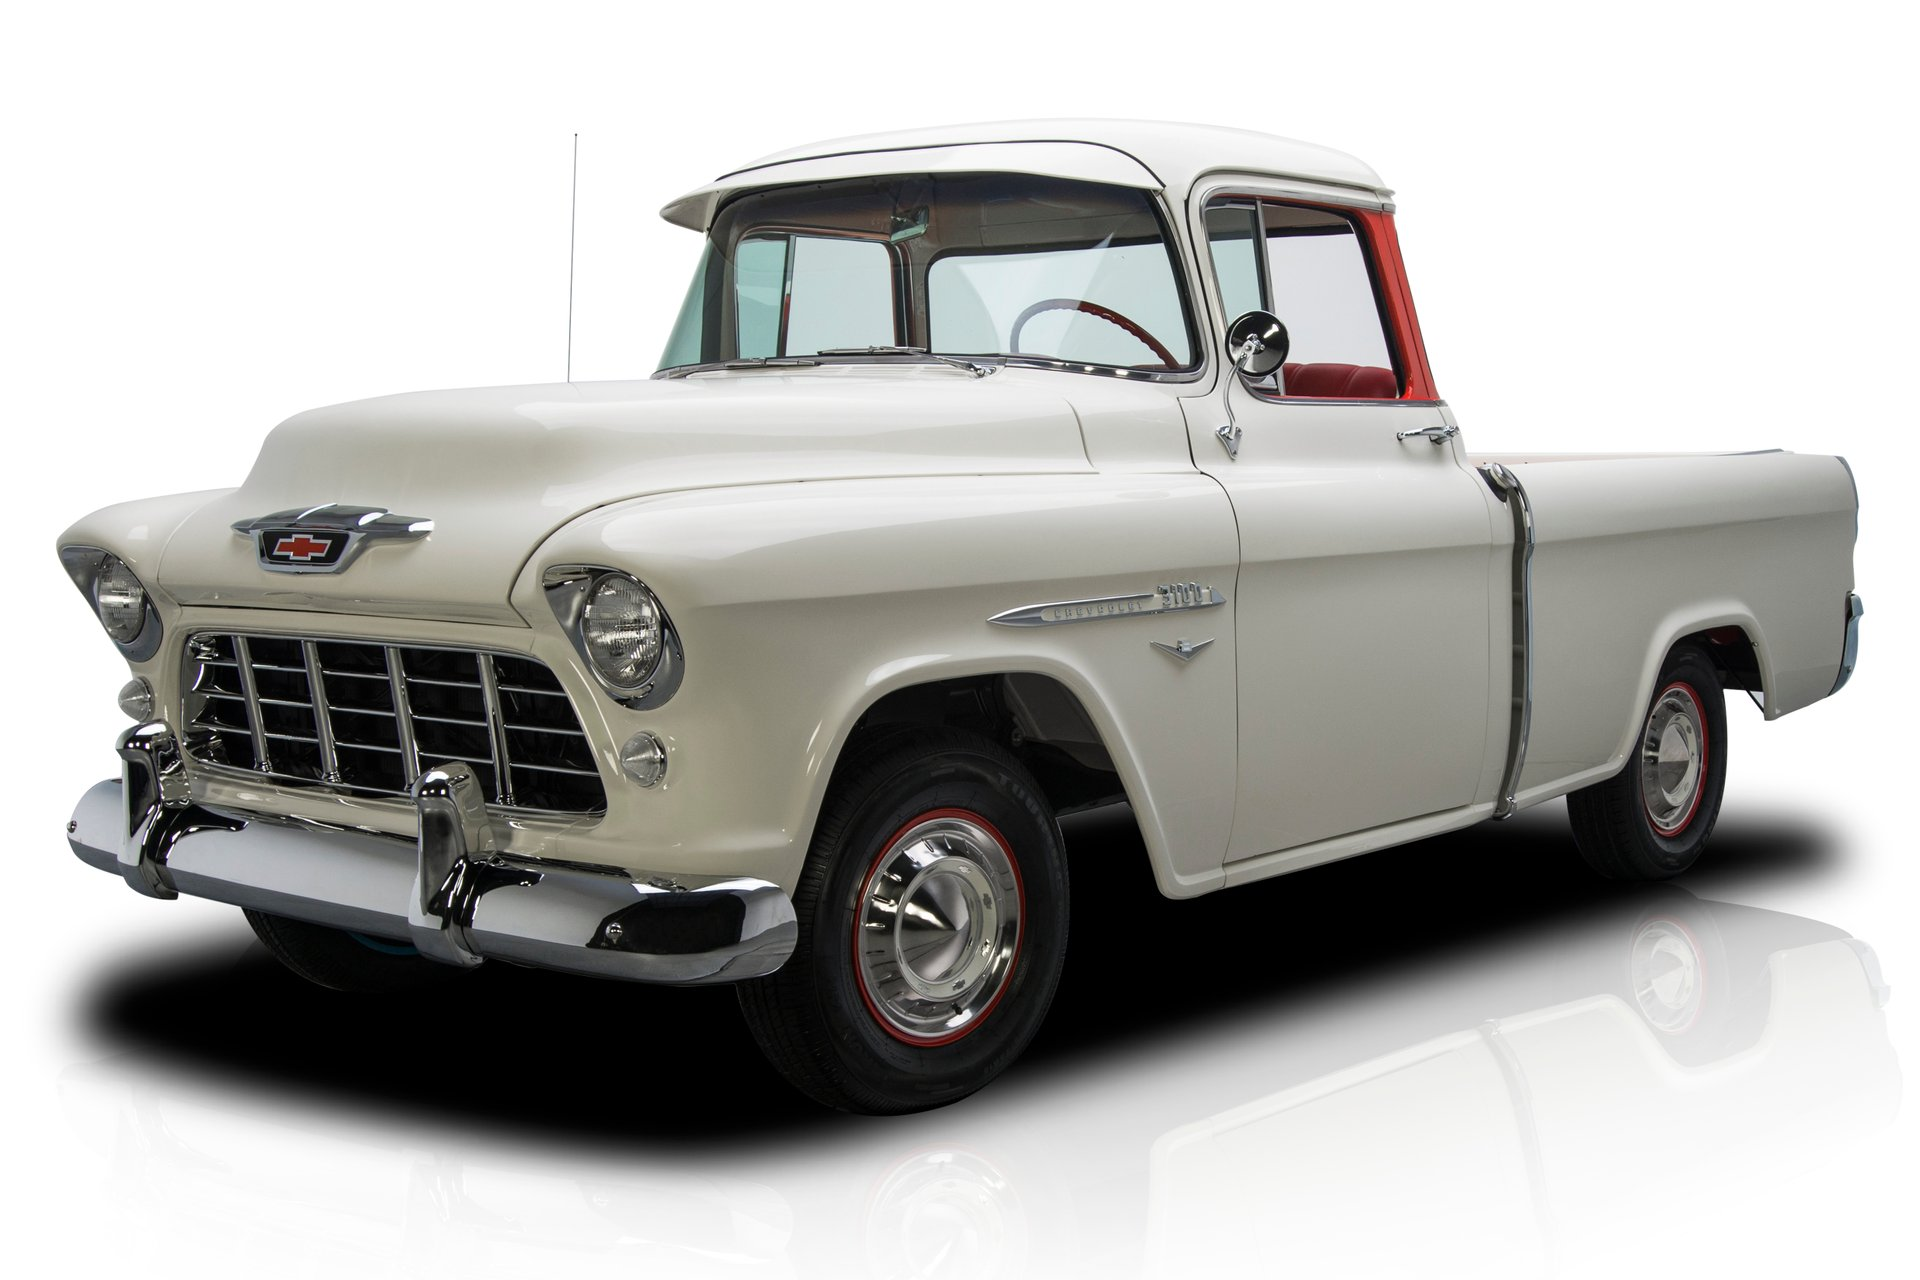 1955 chevrolet cameo pickup truck